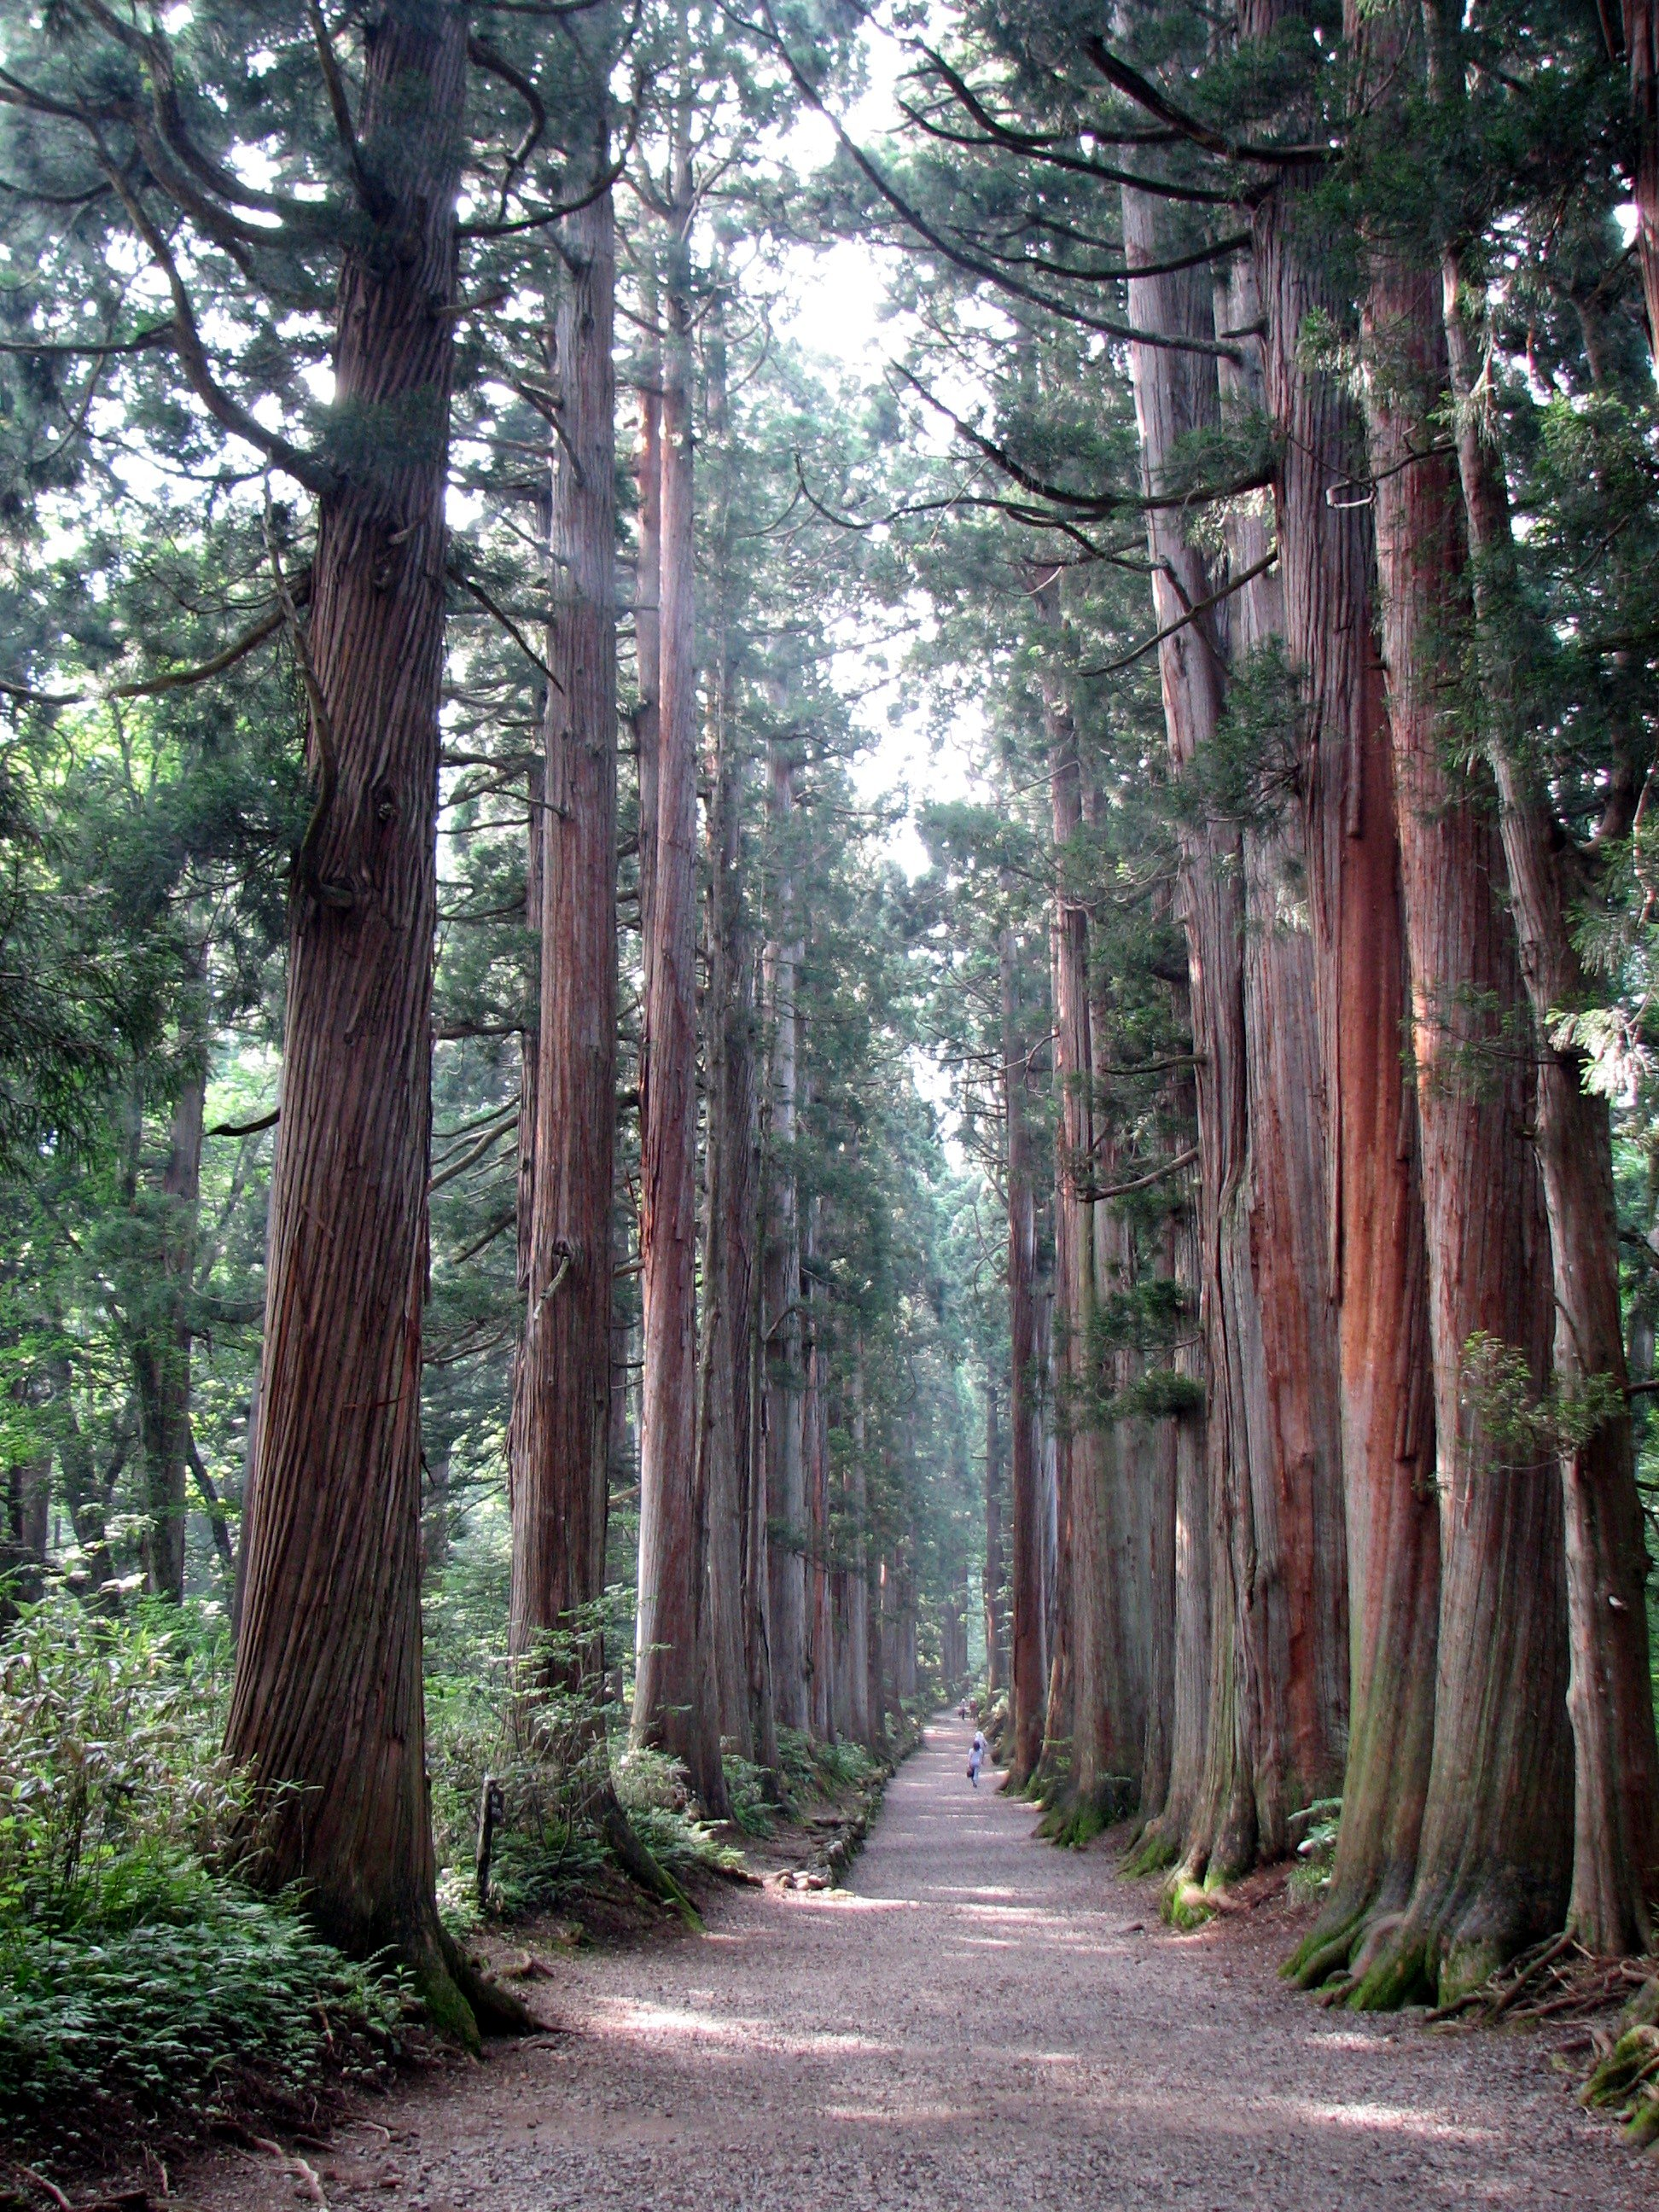 http://upload.wikimedia.org/wikipedia/commons/6/61/Tree_lined_path_to_the_Togakushi_shrine1.jpg